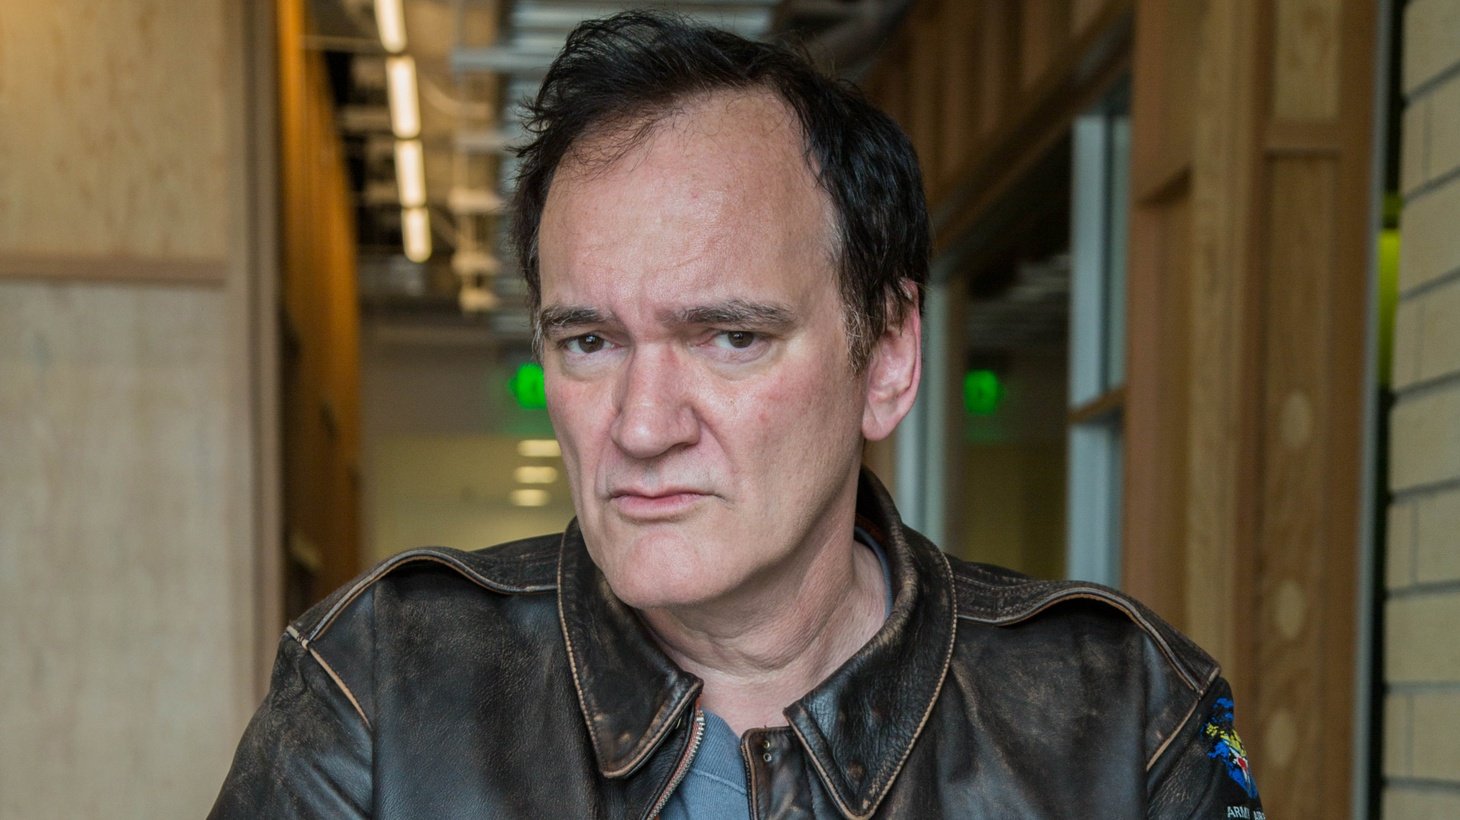 Quentin Tarantino at KCRW.